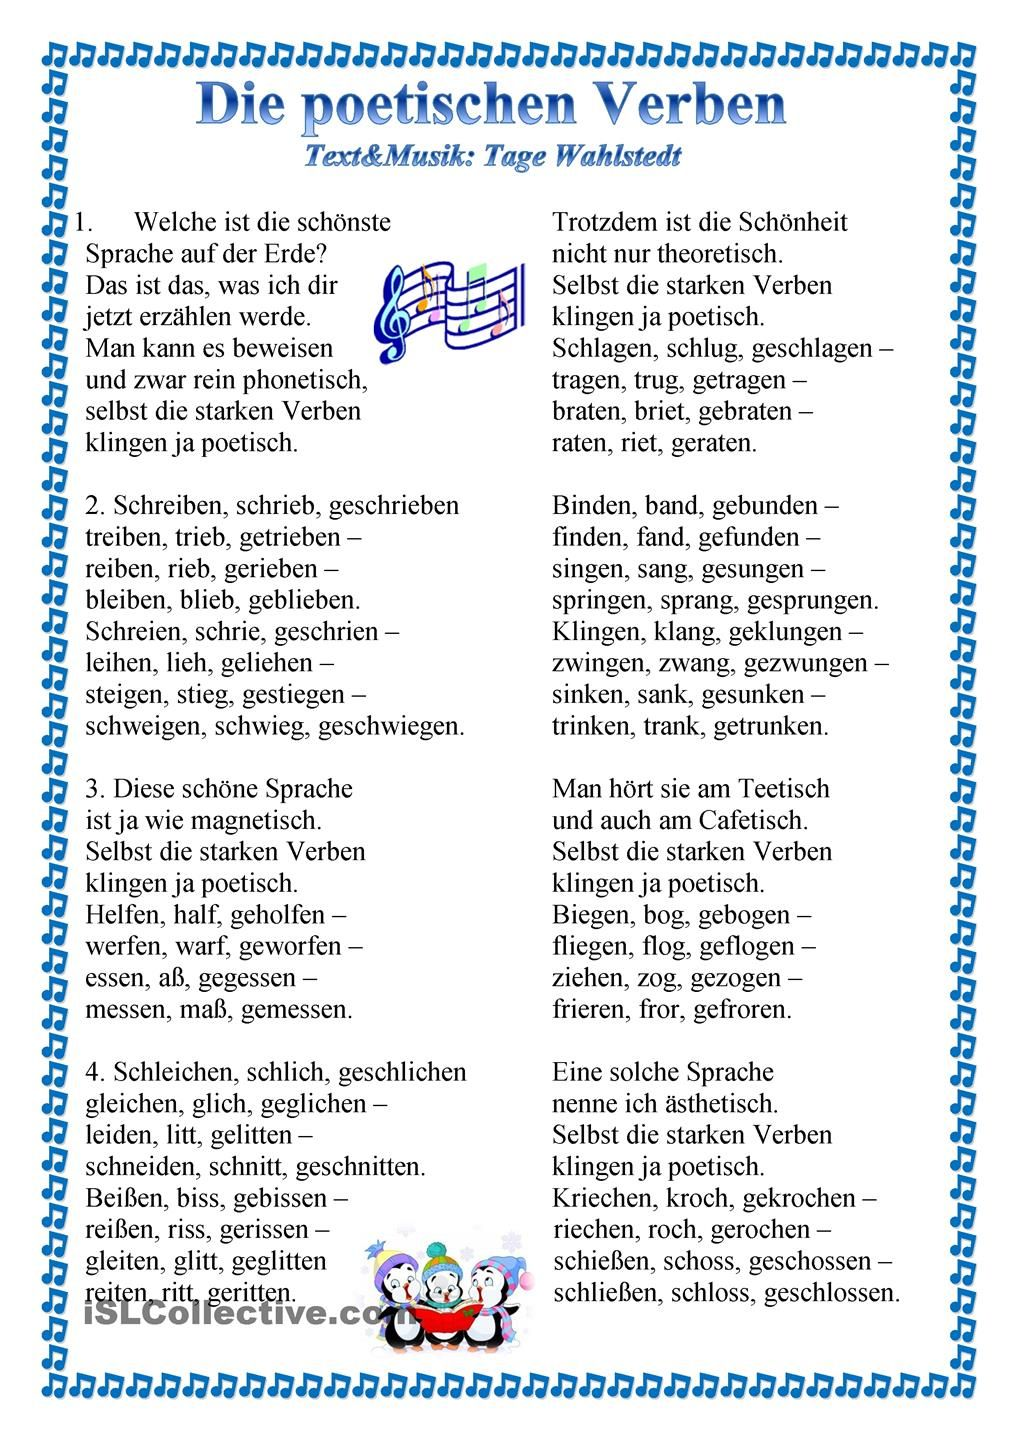 Die poetischen Verben | Studying | Pinterest | German language and ...